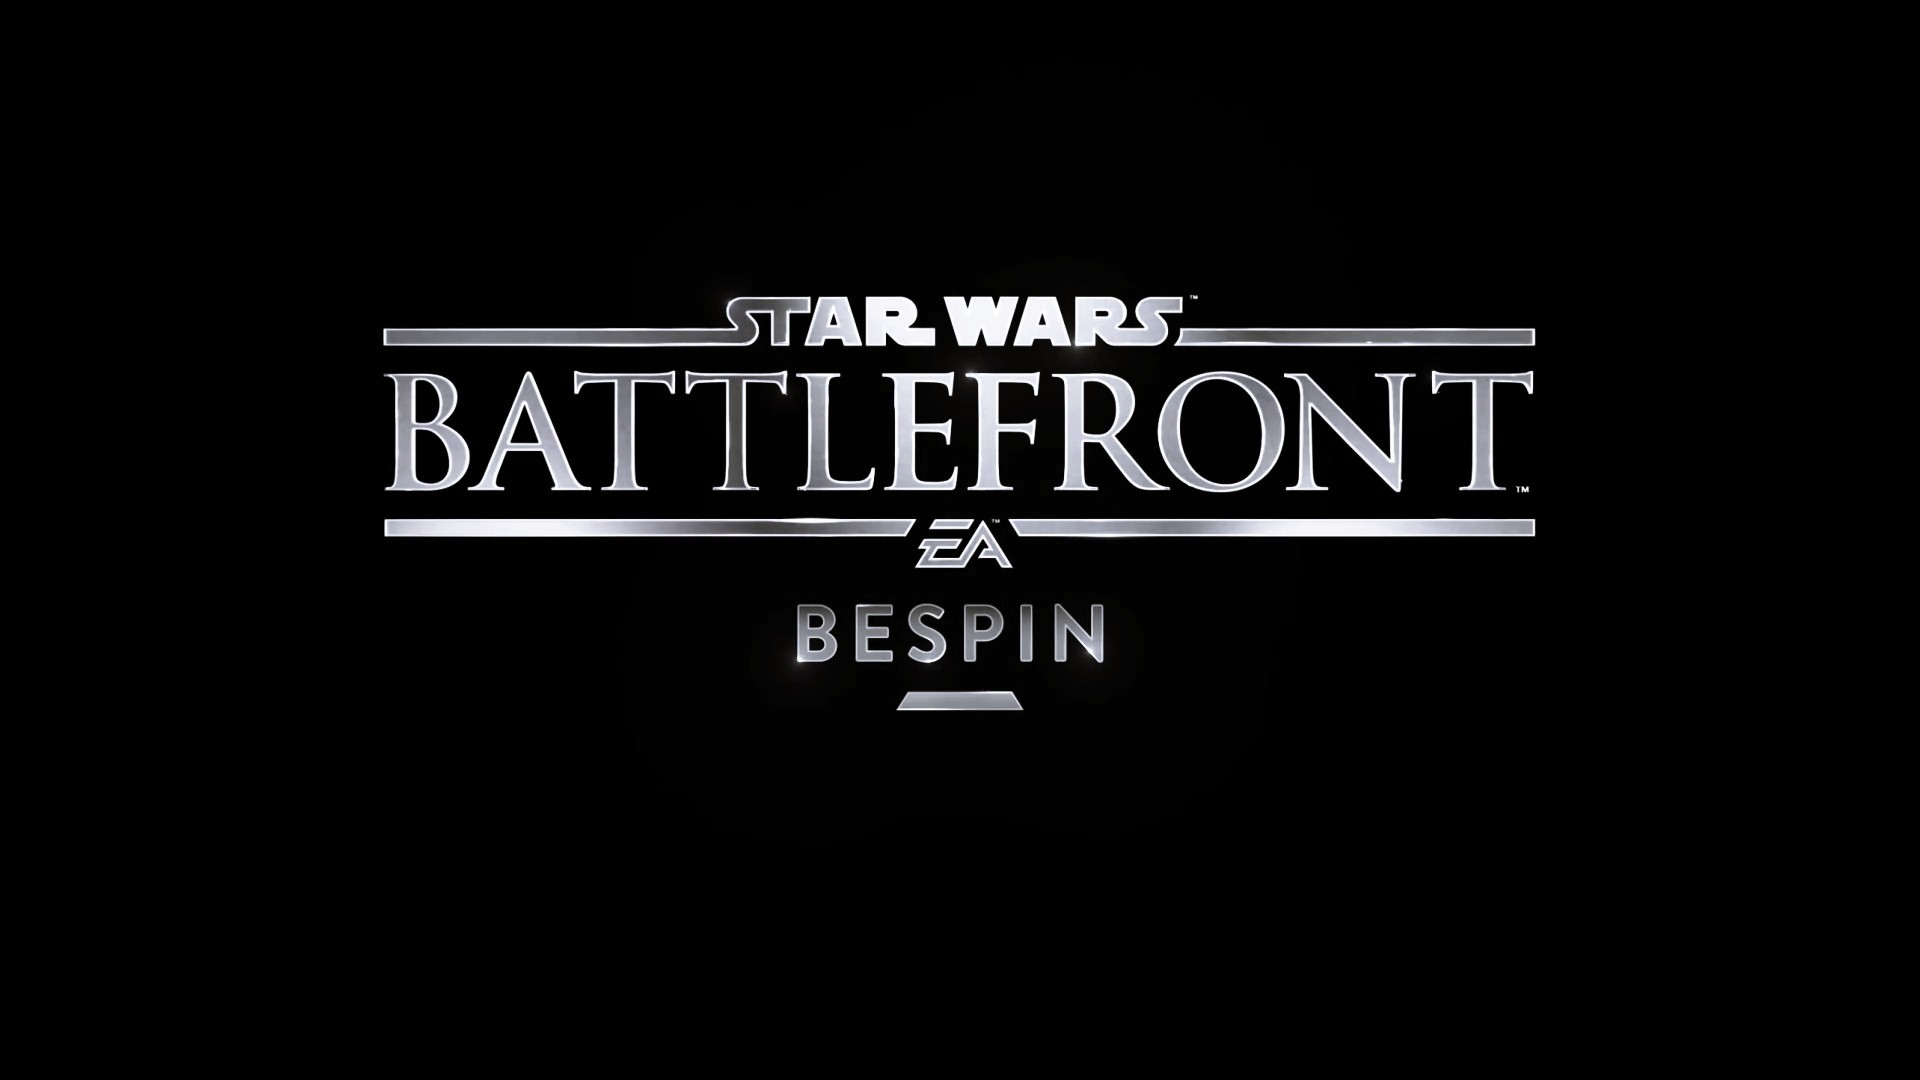 Tags: Star Wars Battlefront Bespin